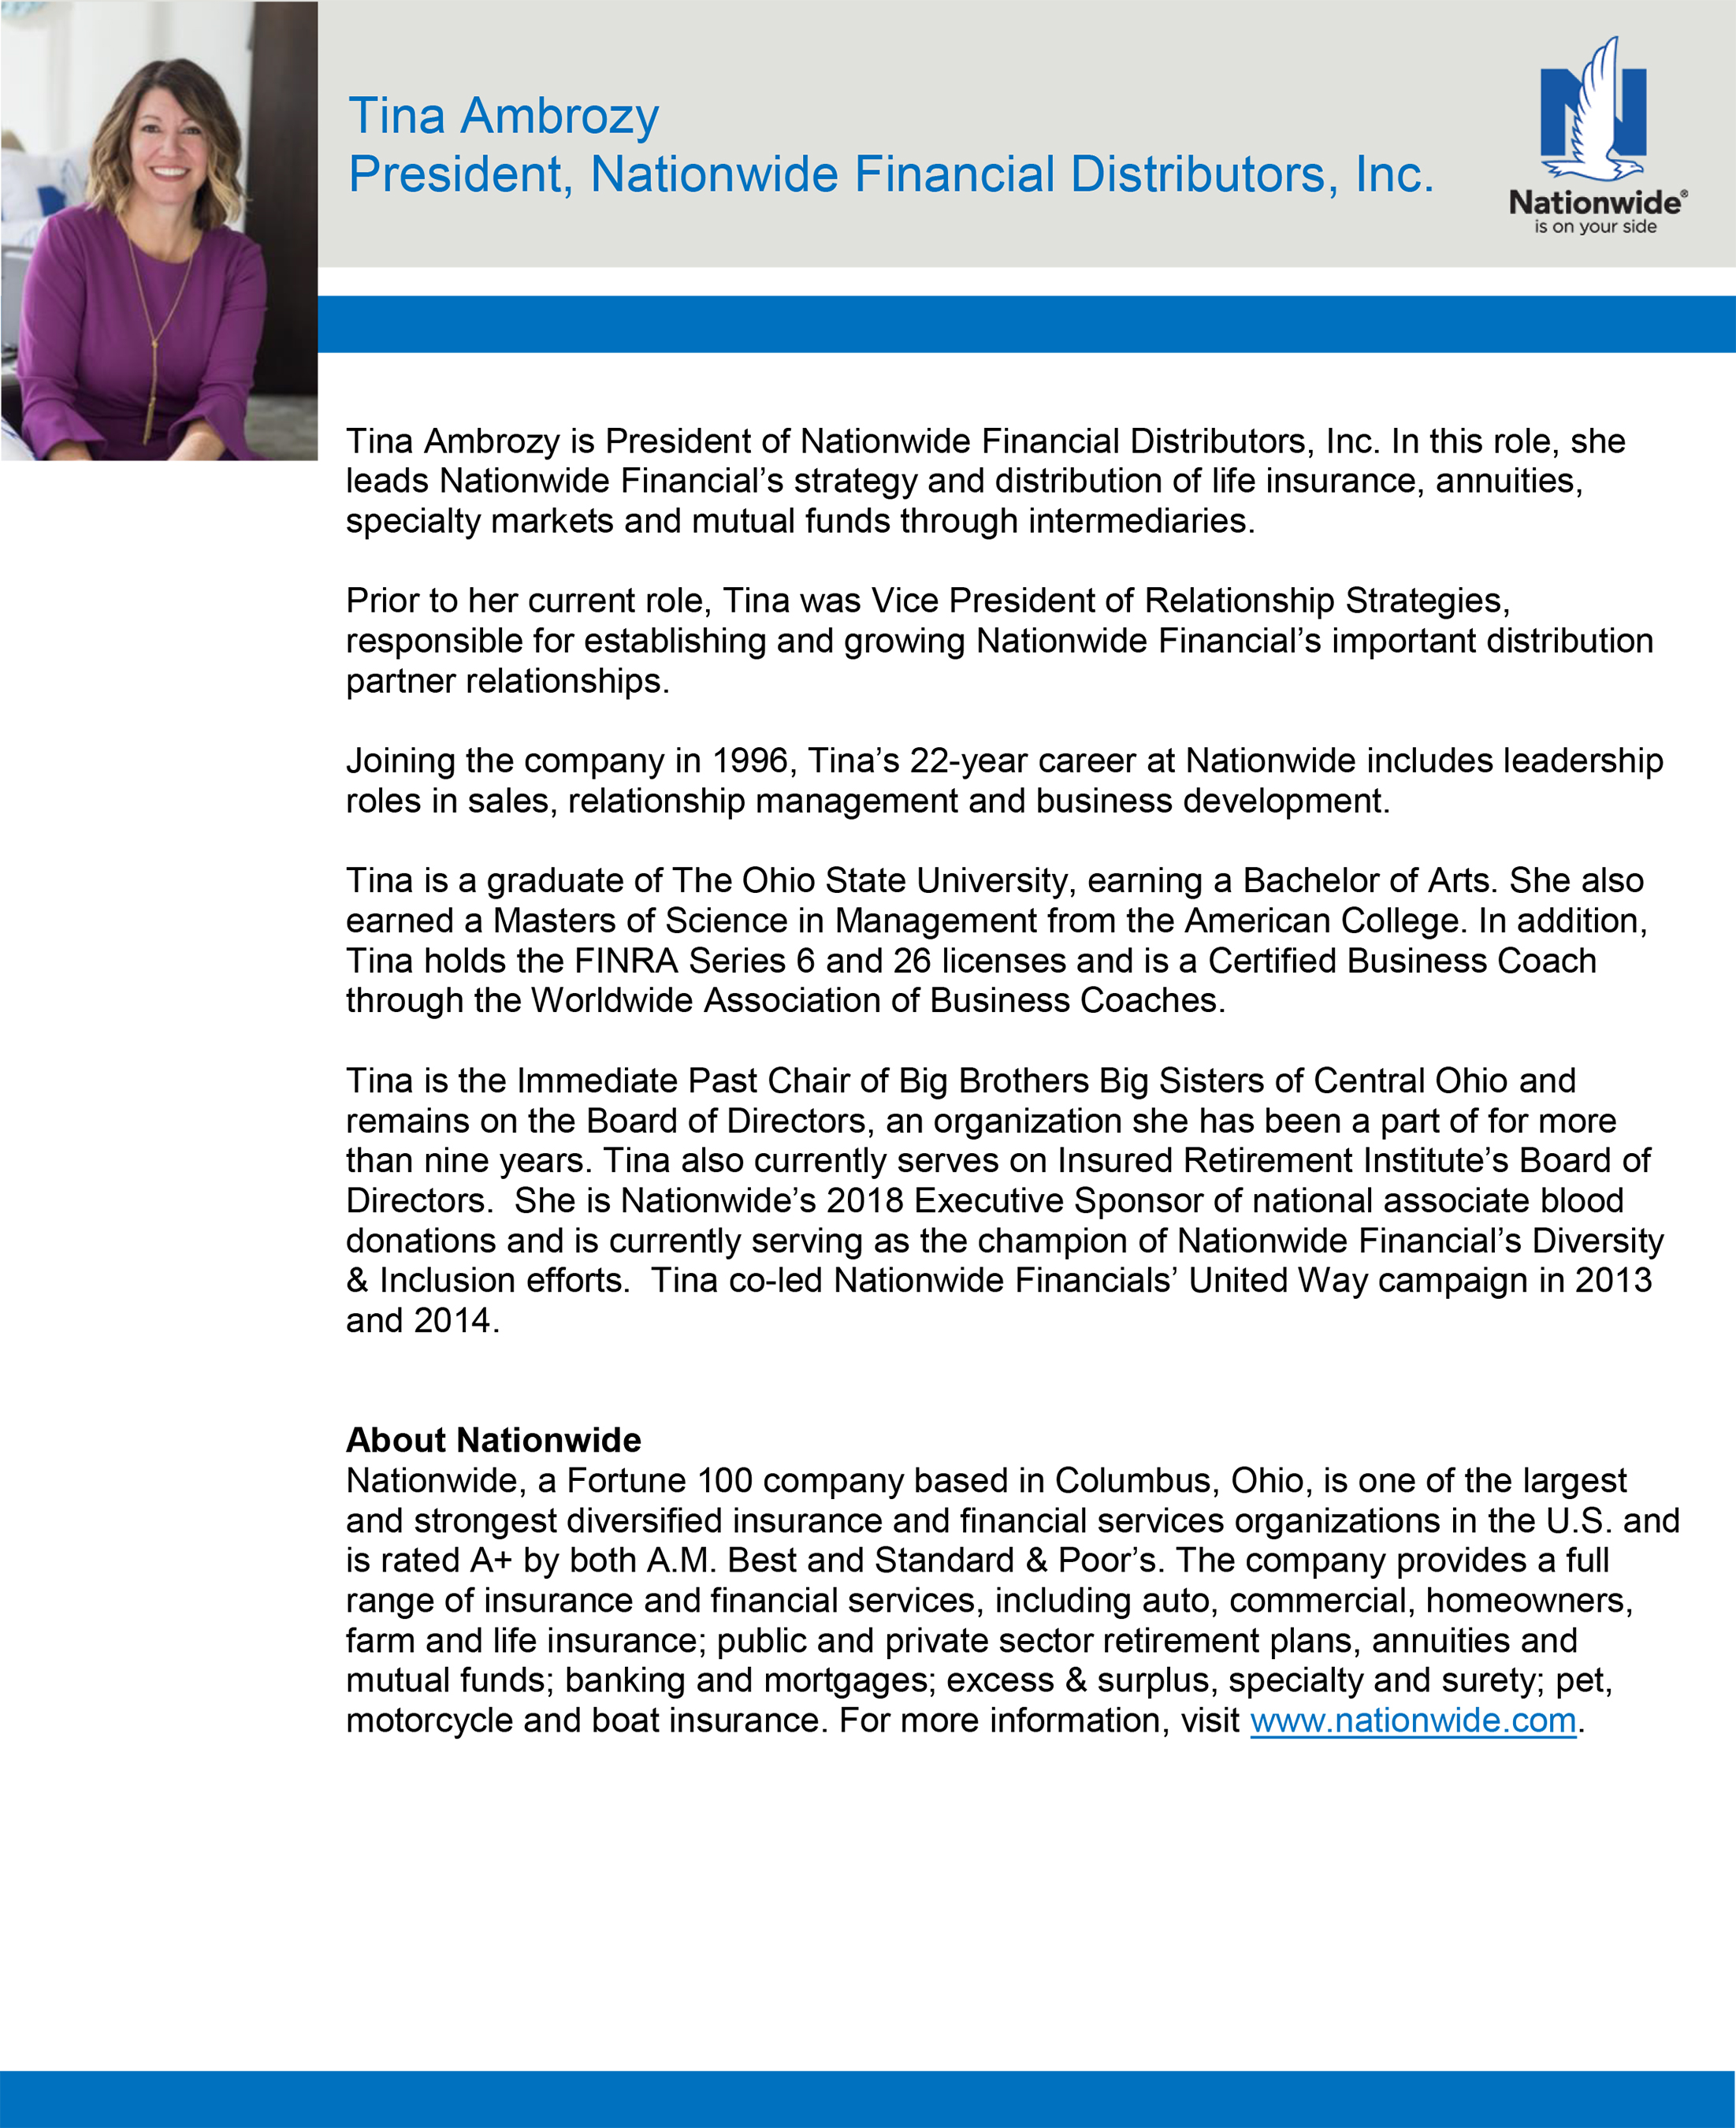 Nationwide Retirement Institute 2018 Social Security Survey spokesperson bio, Tina Ambrozy